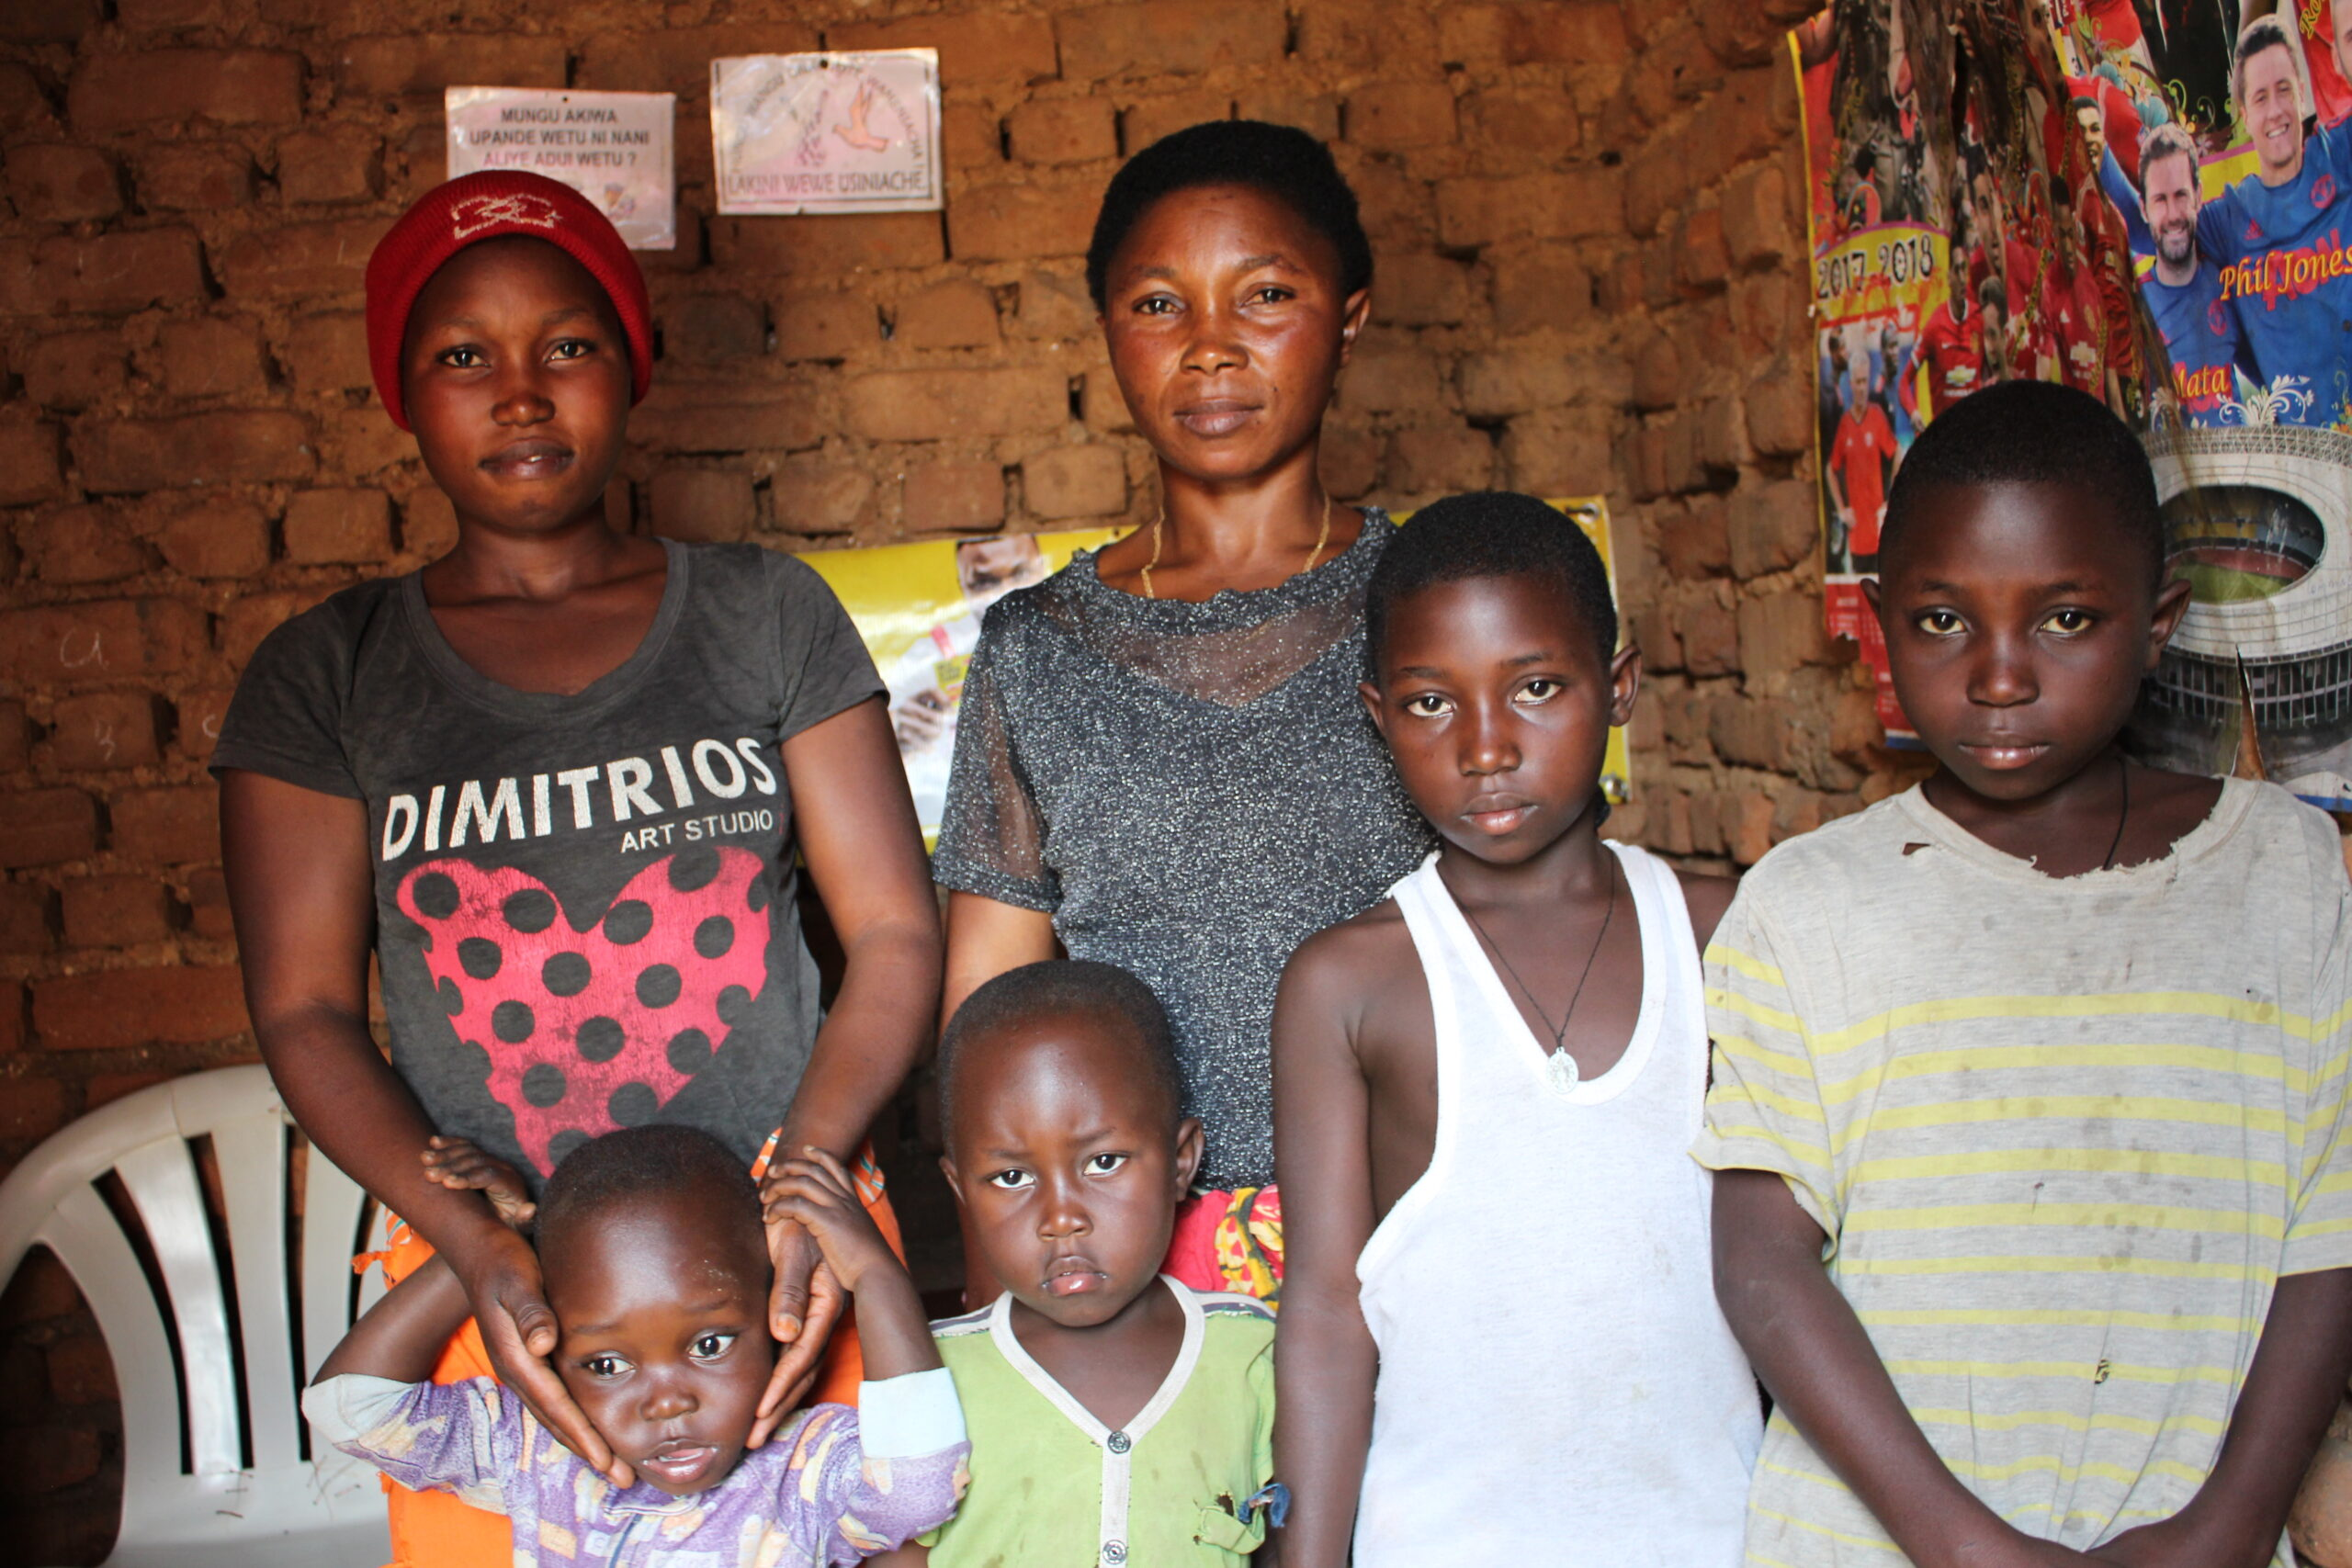 UGANDA | JUL. 5, 2021 — Muslim Woman Chased from Home After Trusting in Christ